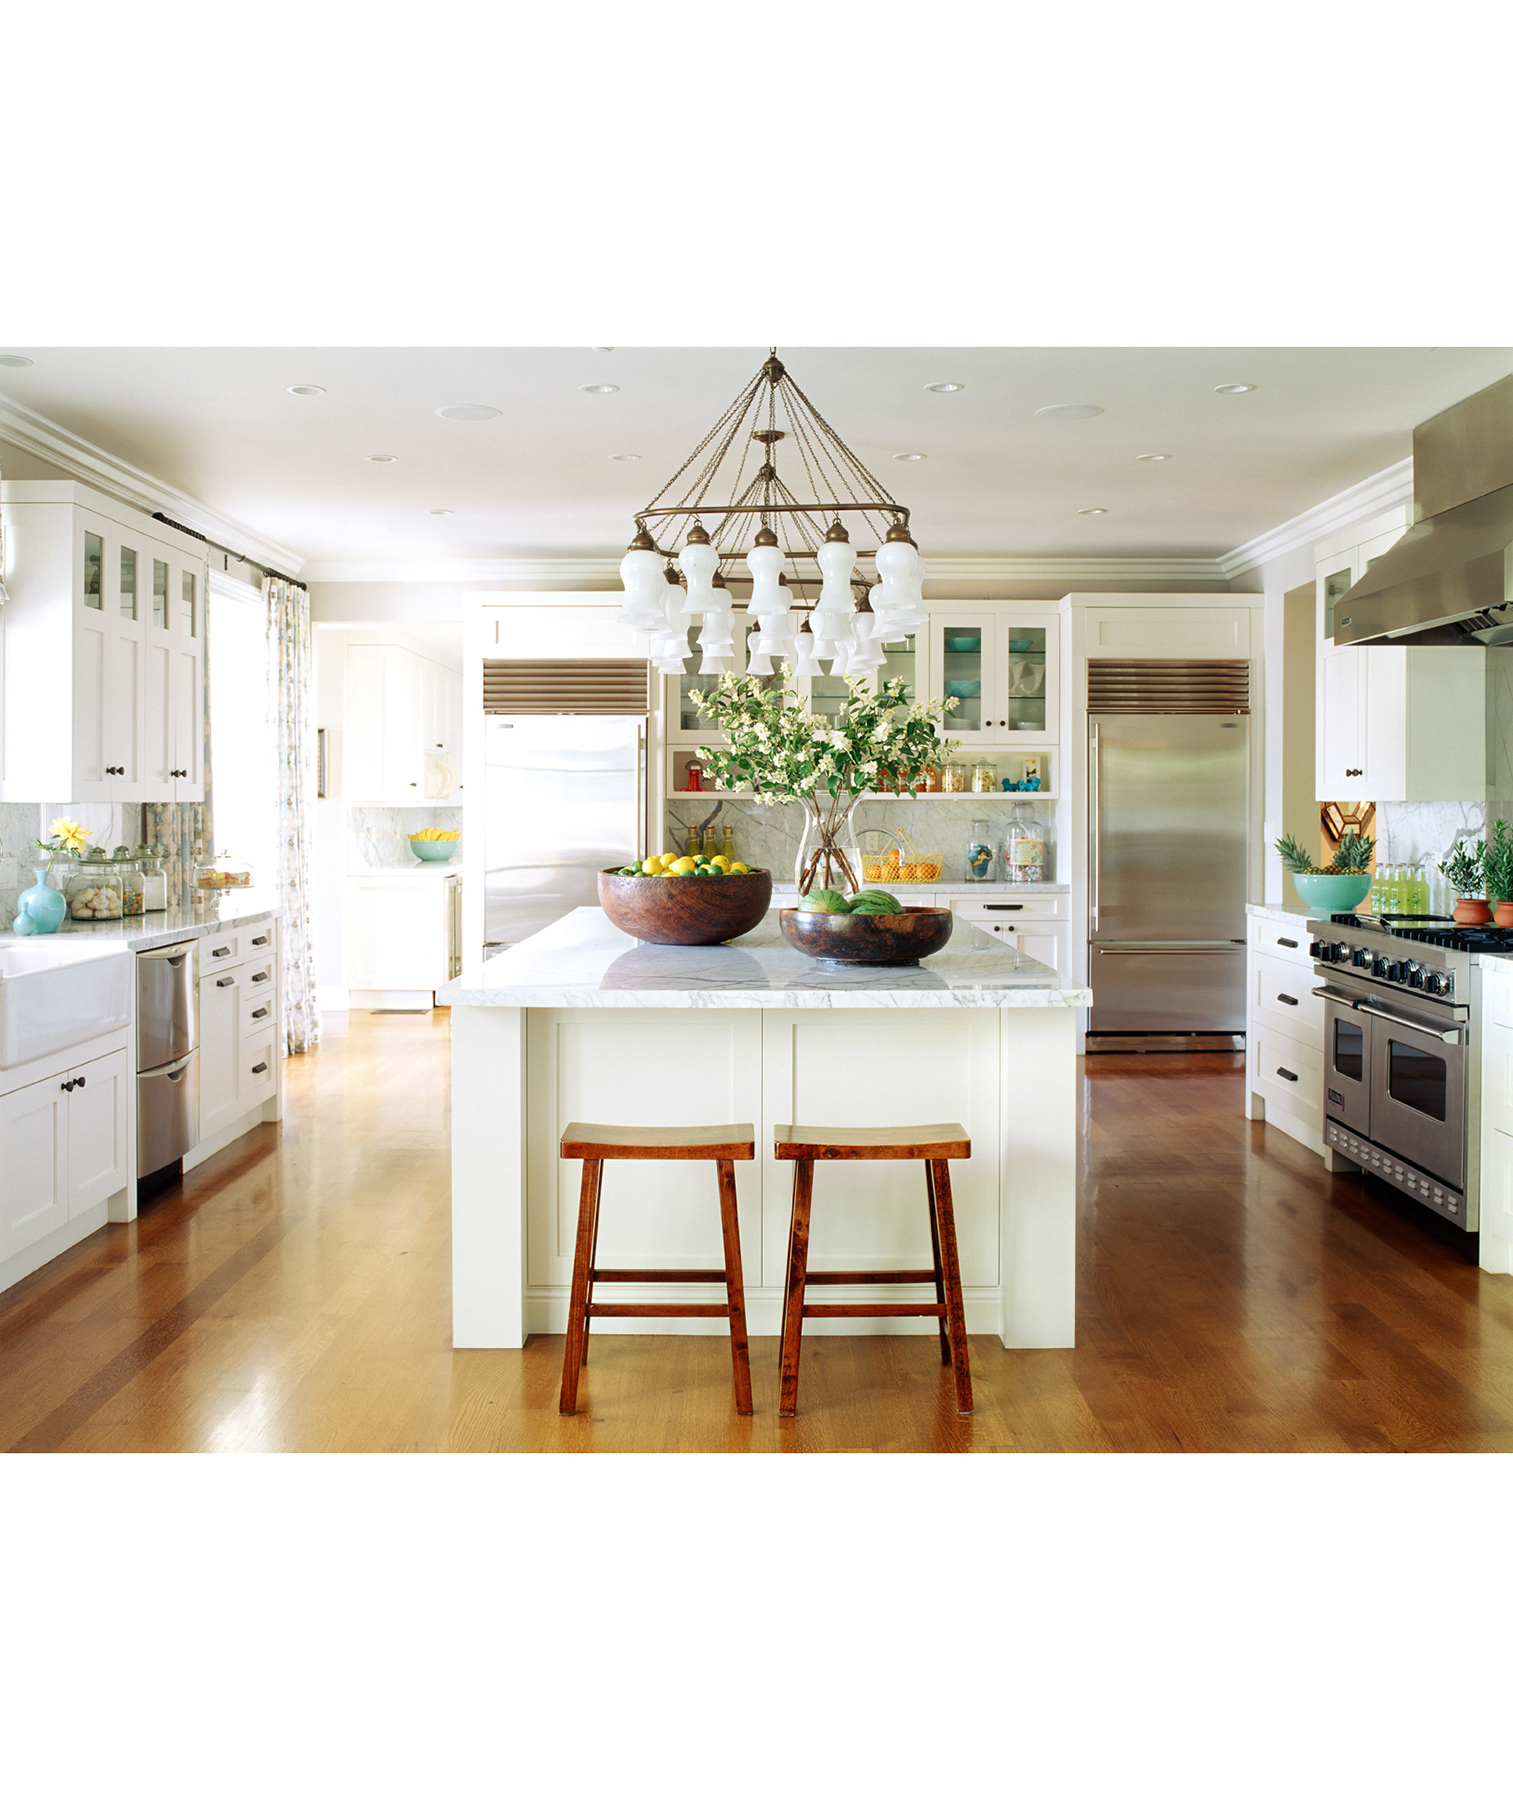 Top 12 Kitchen Island Ideas Real Simple